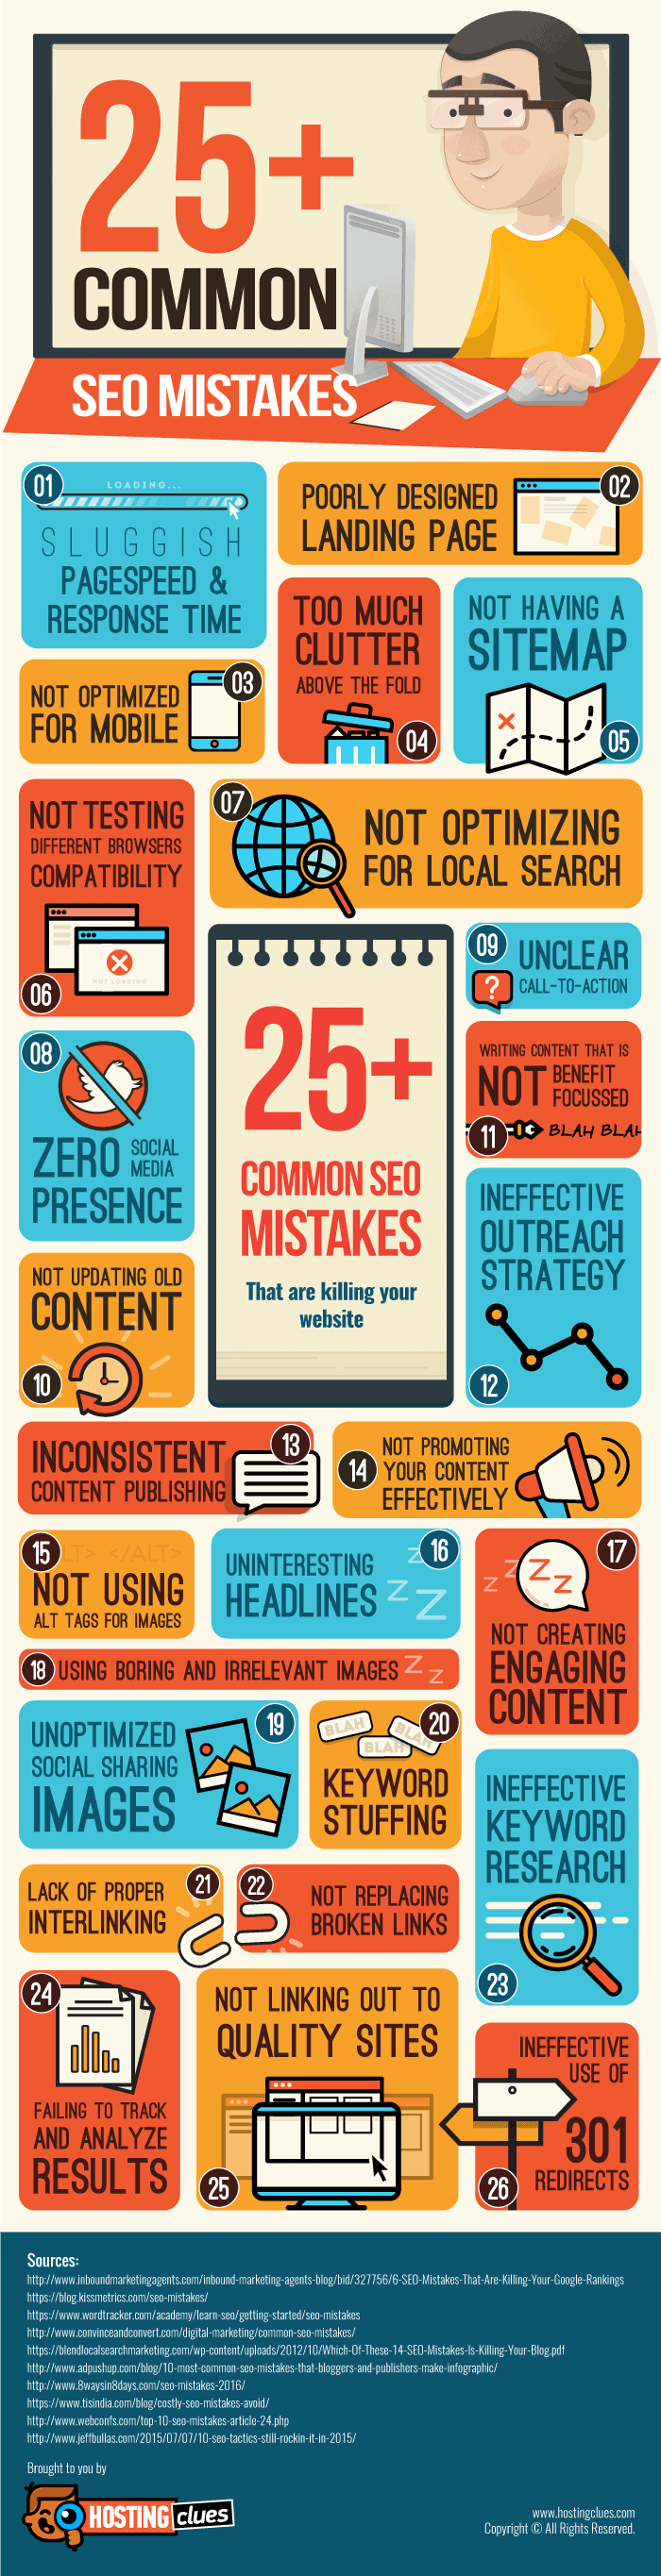 Common SEO Mistakes Infogrpahic